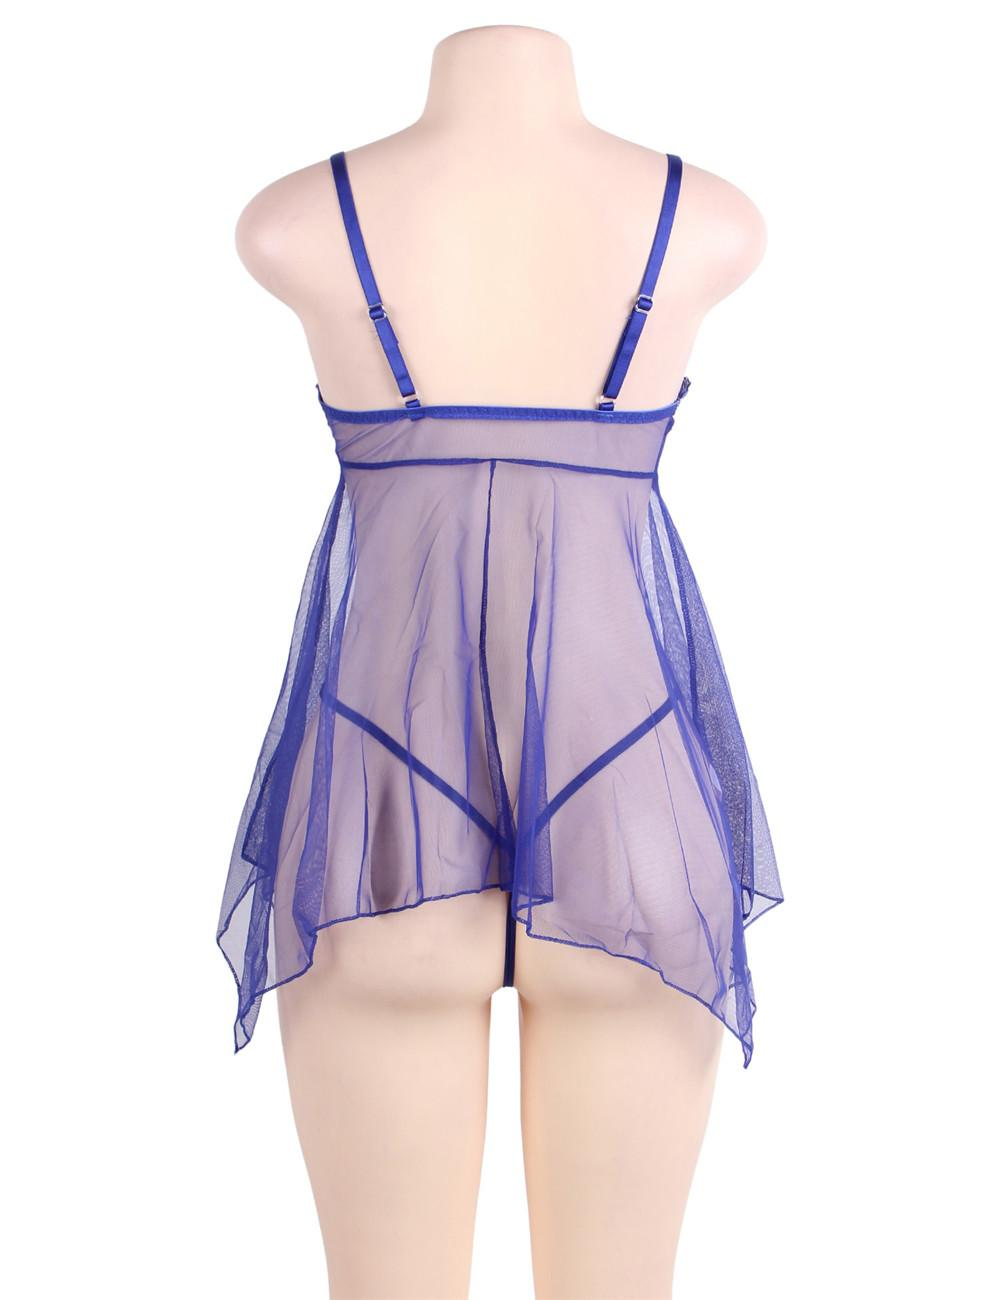 Rear view blue mesh babydoll